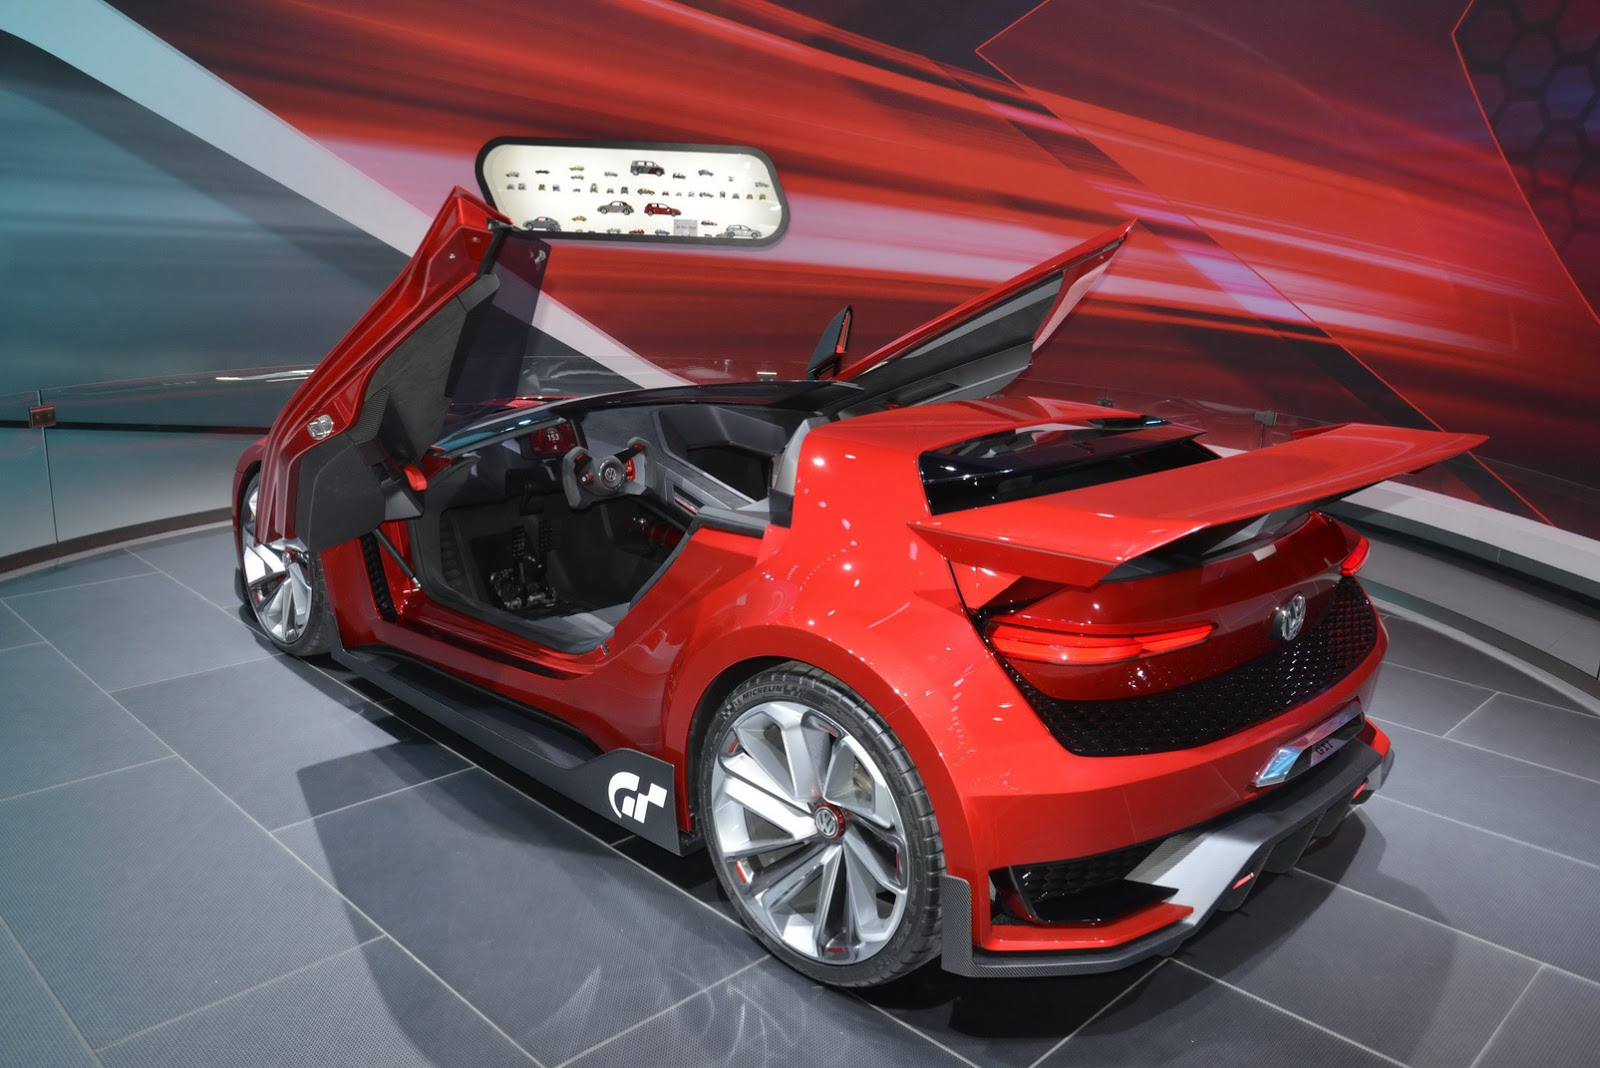 Vw S Gti Roadster Concept Would Make For An Awesome Scirocco Carscoops